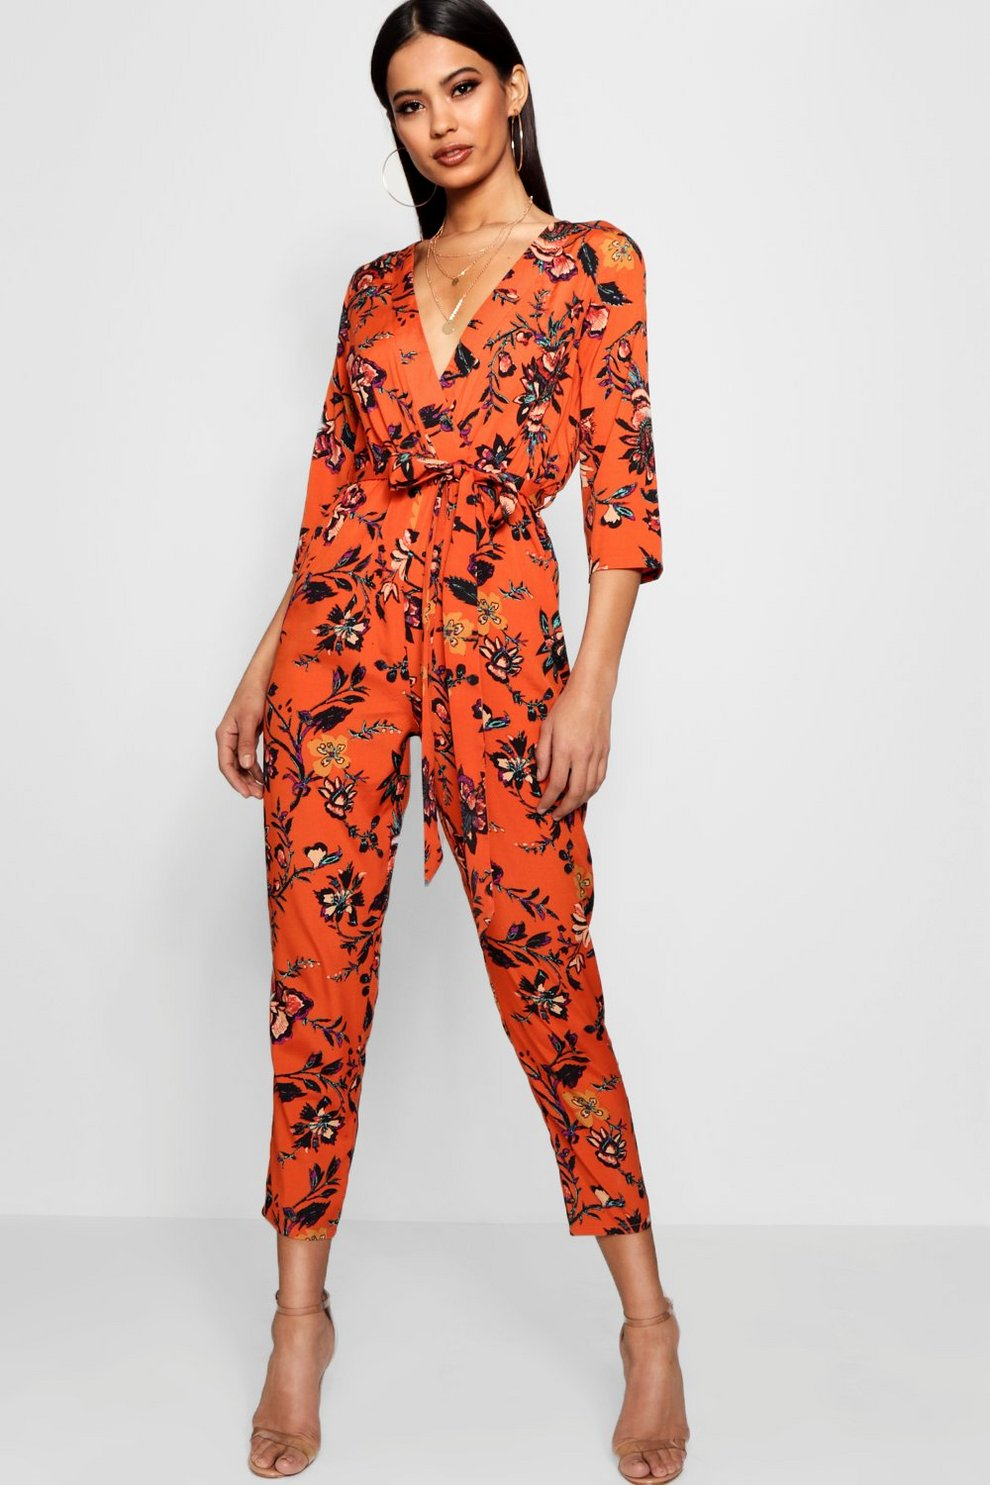 Boohoo Floral Wrap Front Jumpsuit 2018 New Discount Cost Discount Enjoy Deals Cheap Price Free Shipping 2018 VBGLbFT7Z0